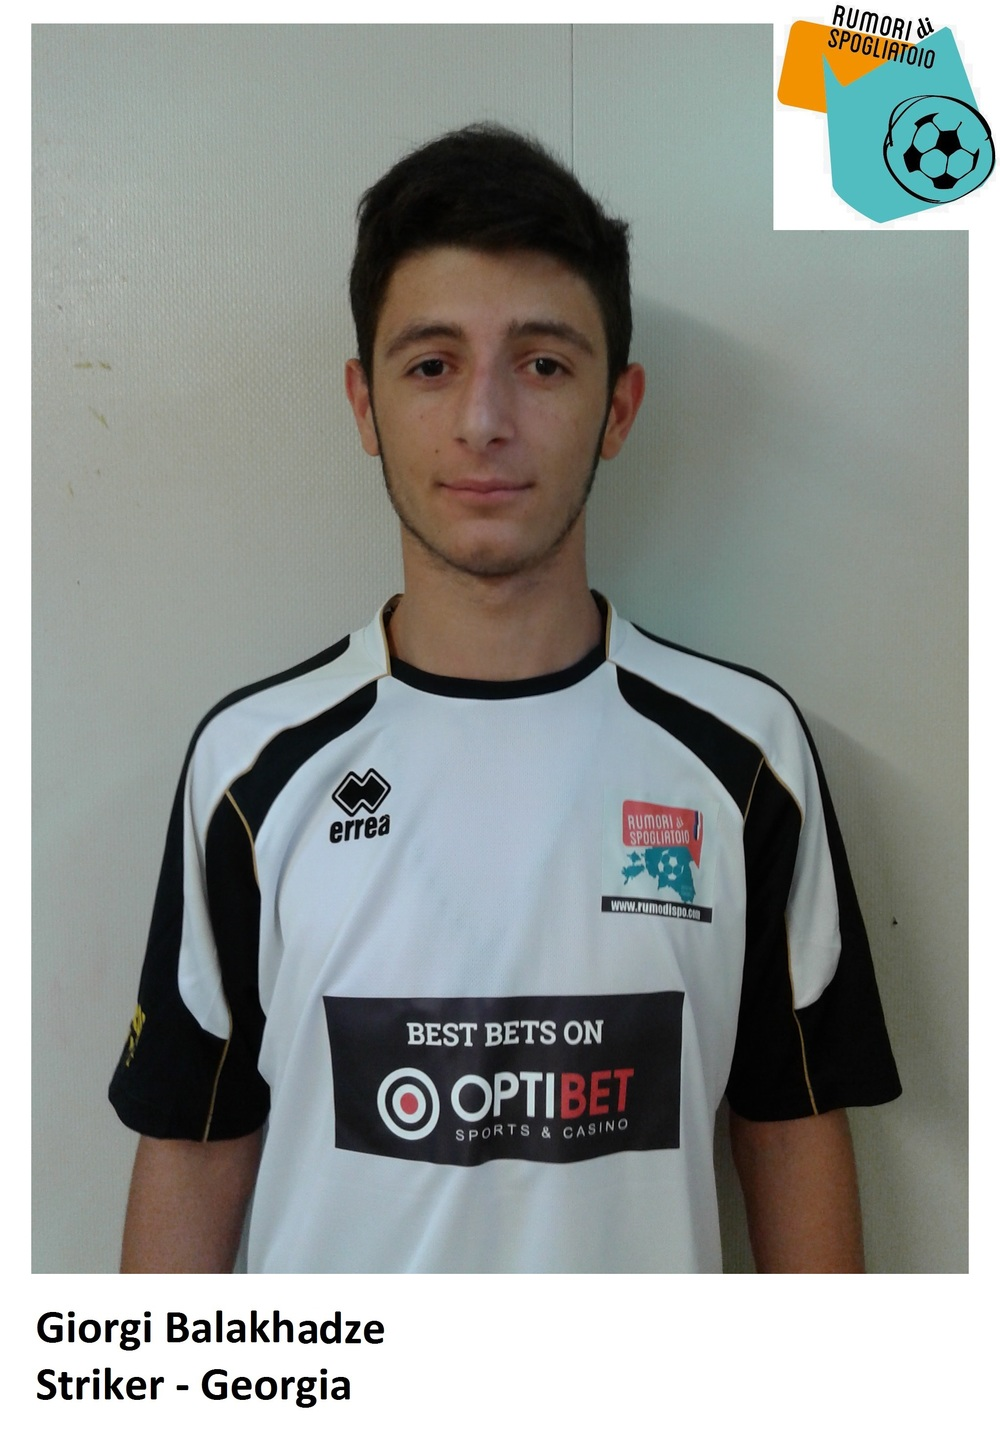 Giorgi Balakhadze was MVP for Rumori Calcio according to IAFA. Exception made for the goal, still room for improvement.